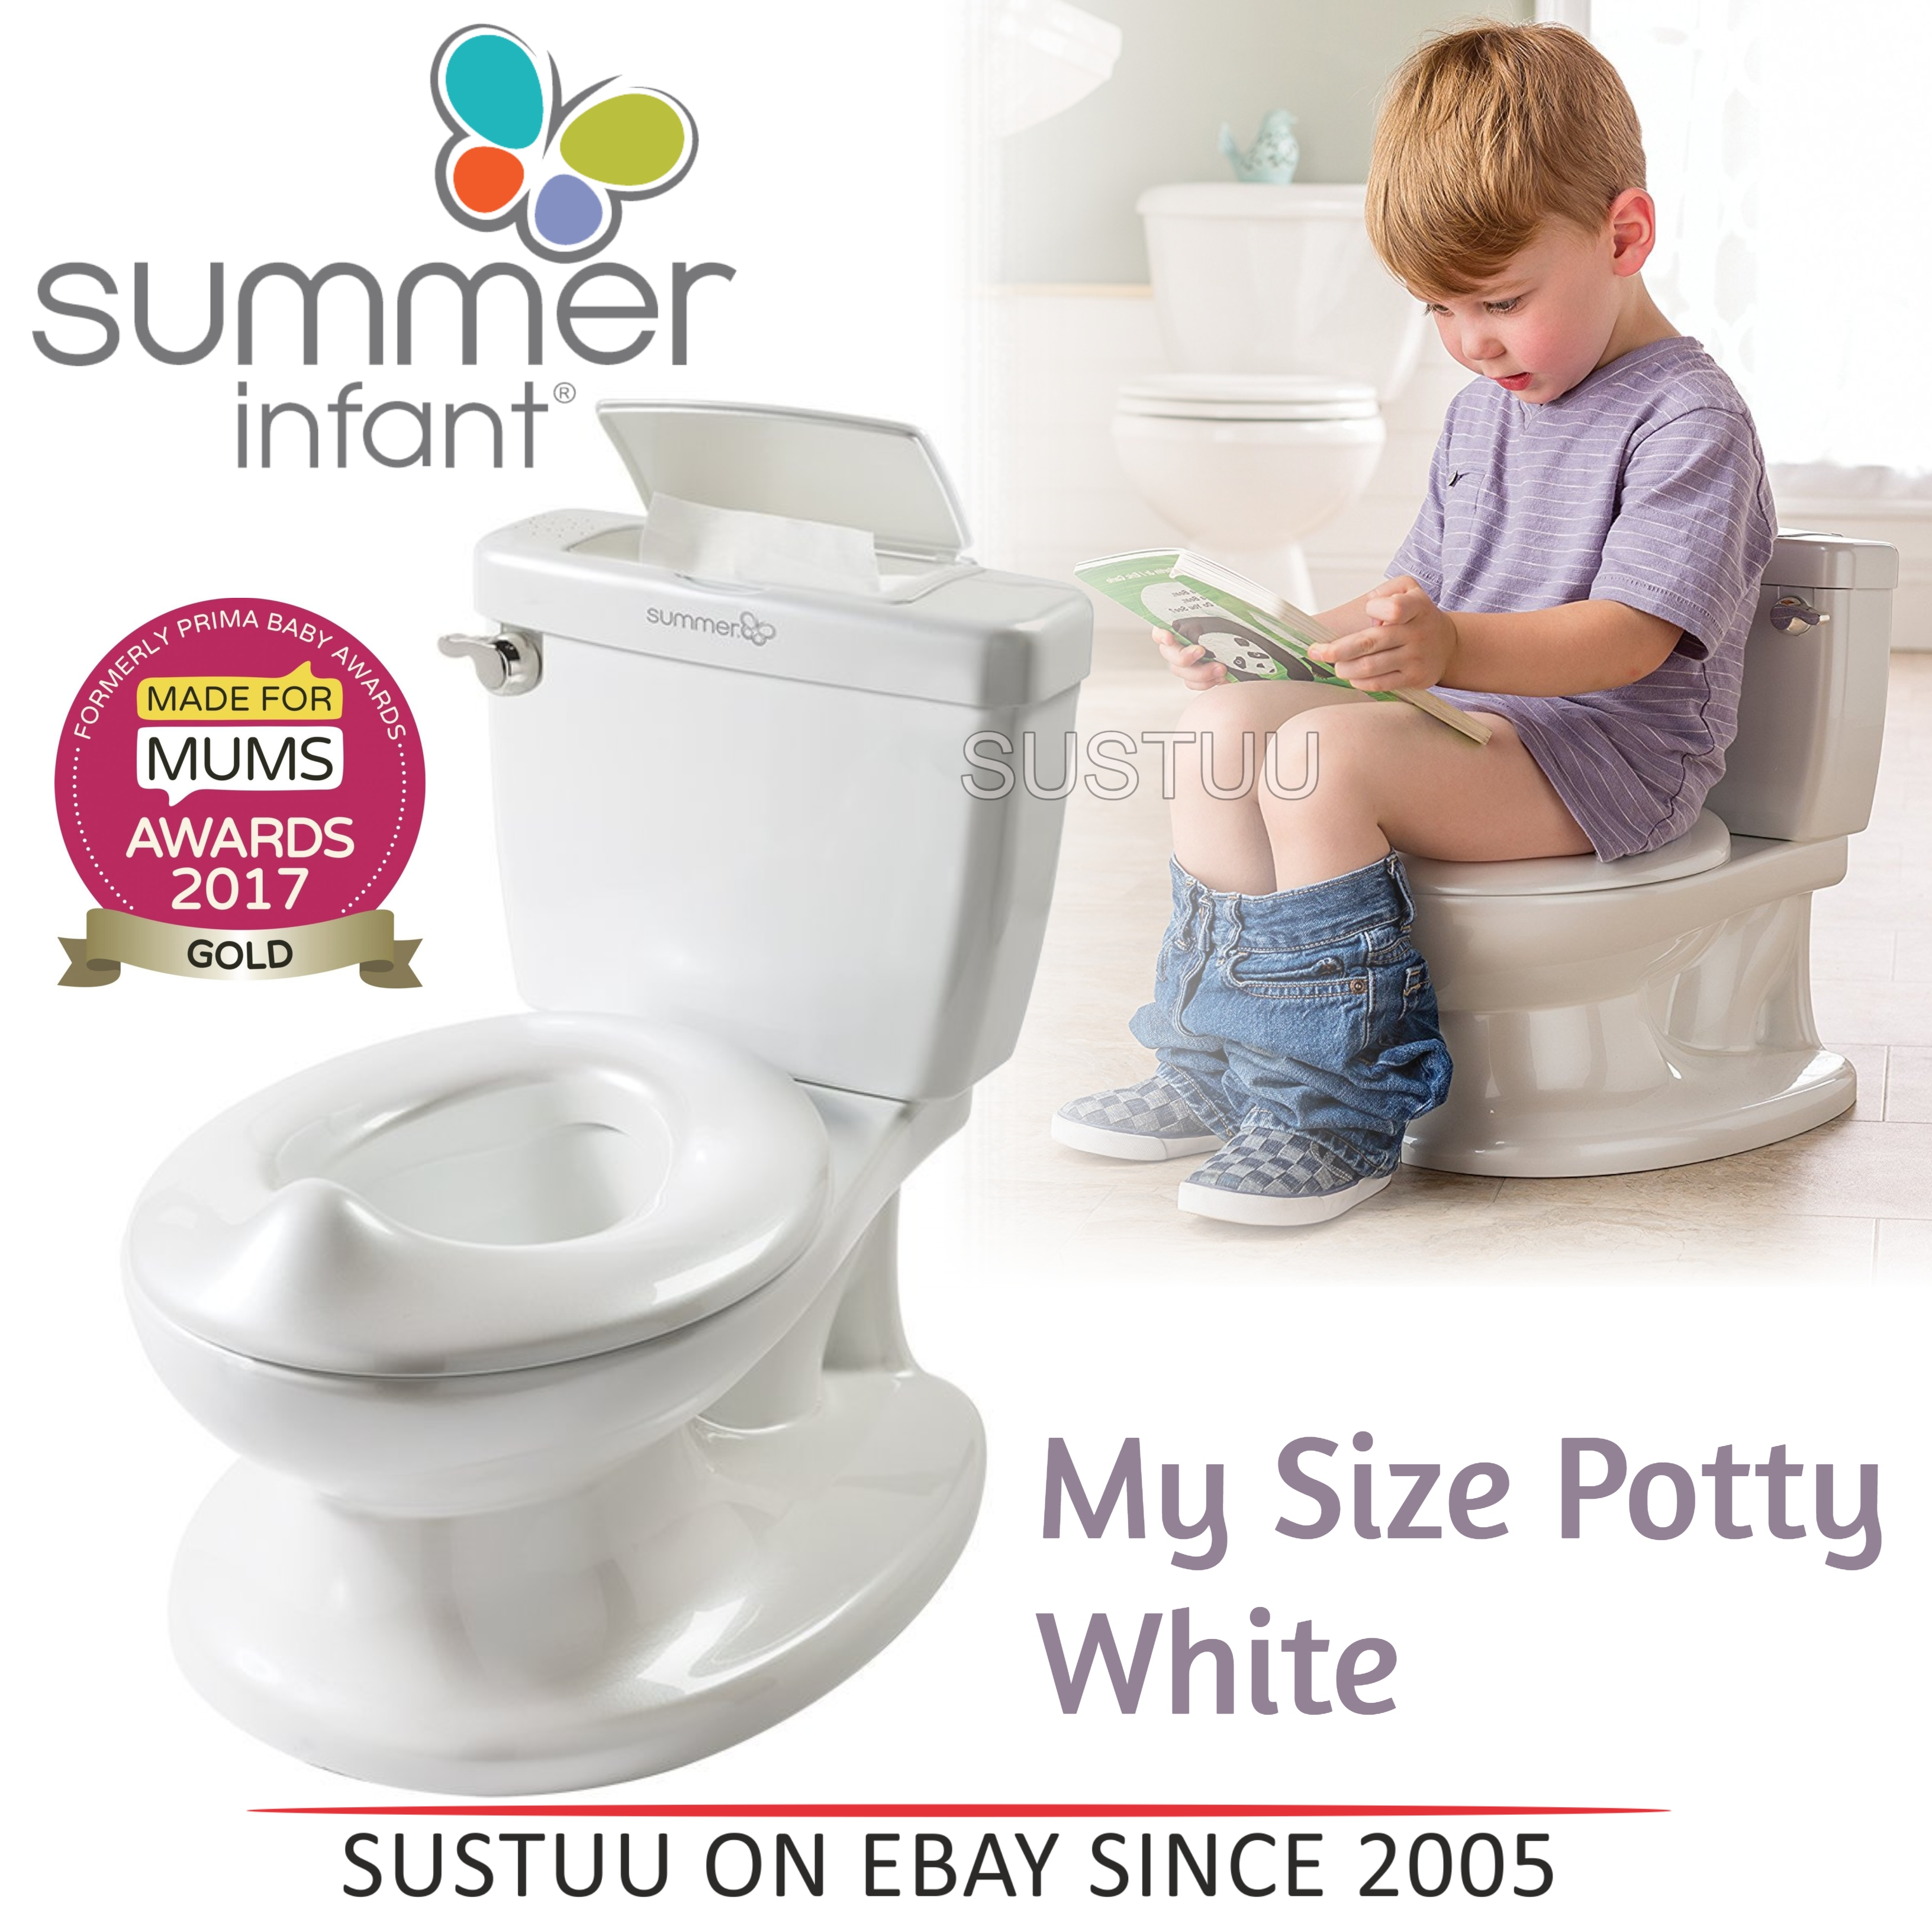 11916dc87d0 Details about Summer Infant My Size Potty│Baby Kid s Toilet Trainer Seat│Flip  Up Chair│White│